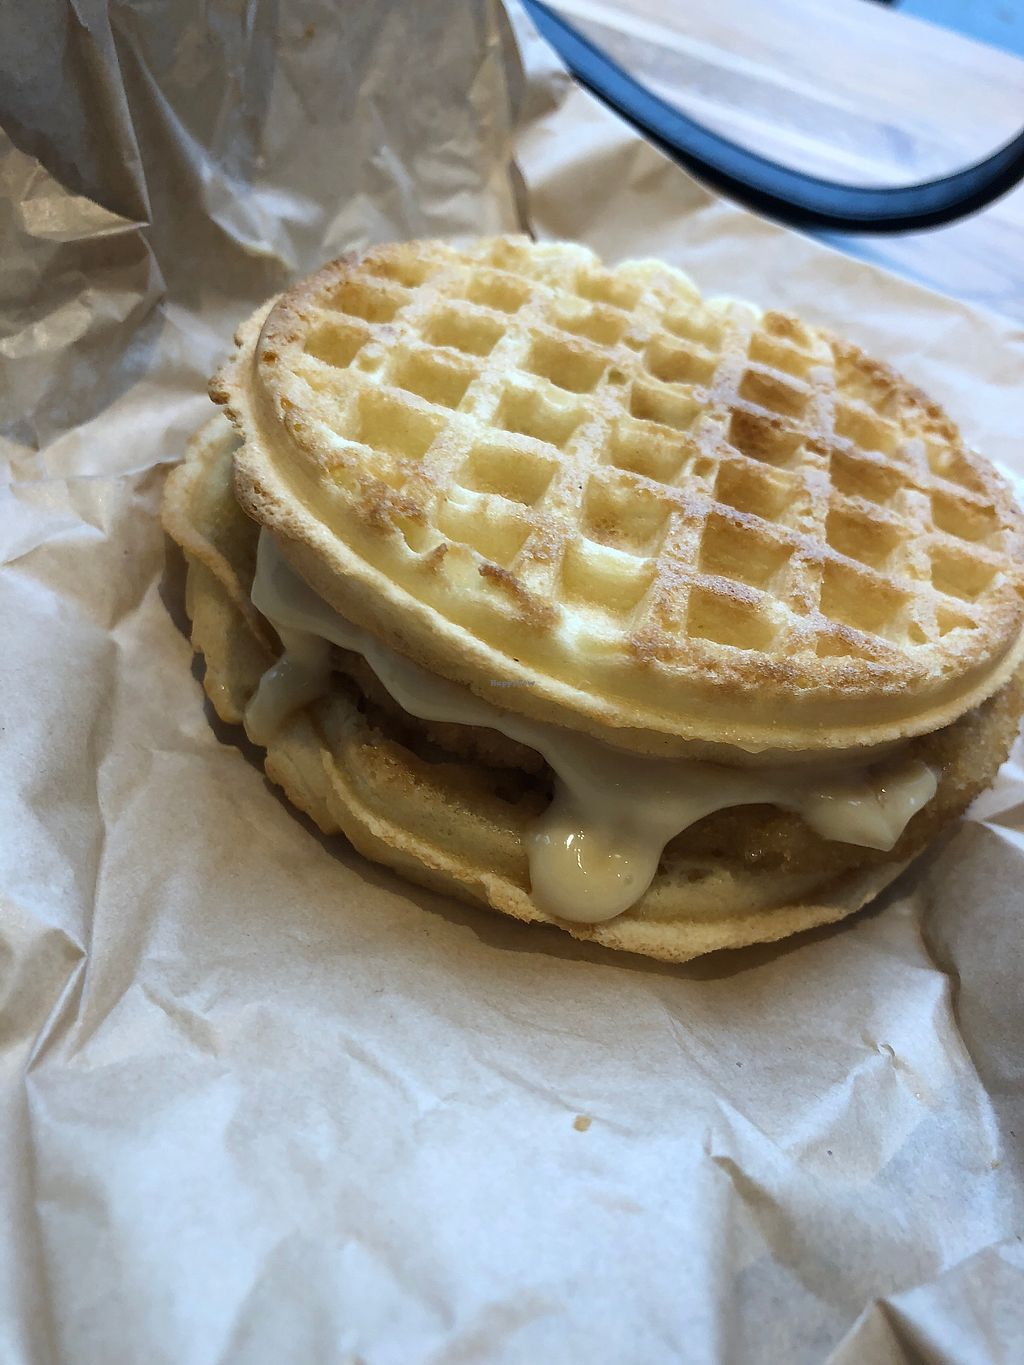 """Photo of Vegan Picnic  by <a href=""""/members/profile/alexis17"""">alexis17</a> <br/>Chicken & waffles <br/> March 21, 2018  - <a href='/contact/abuse/image/87046/373917'>Report</a>"""